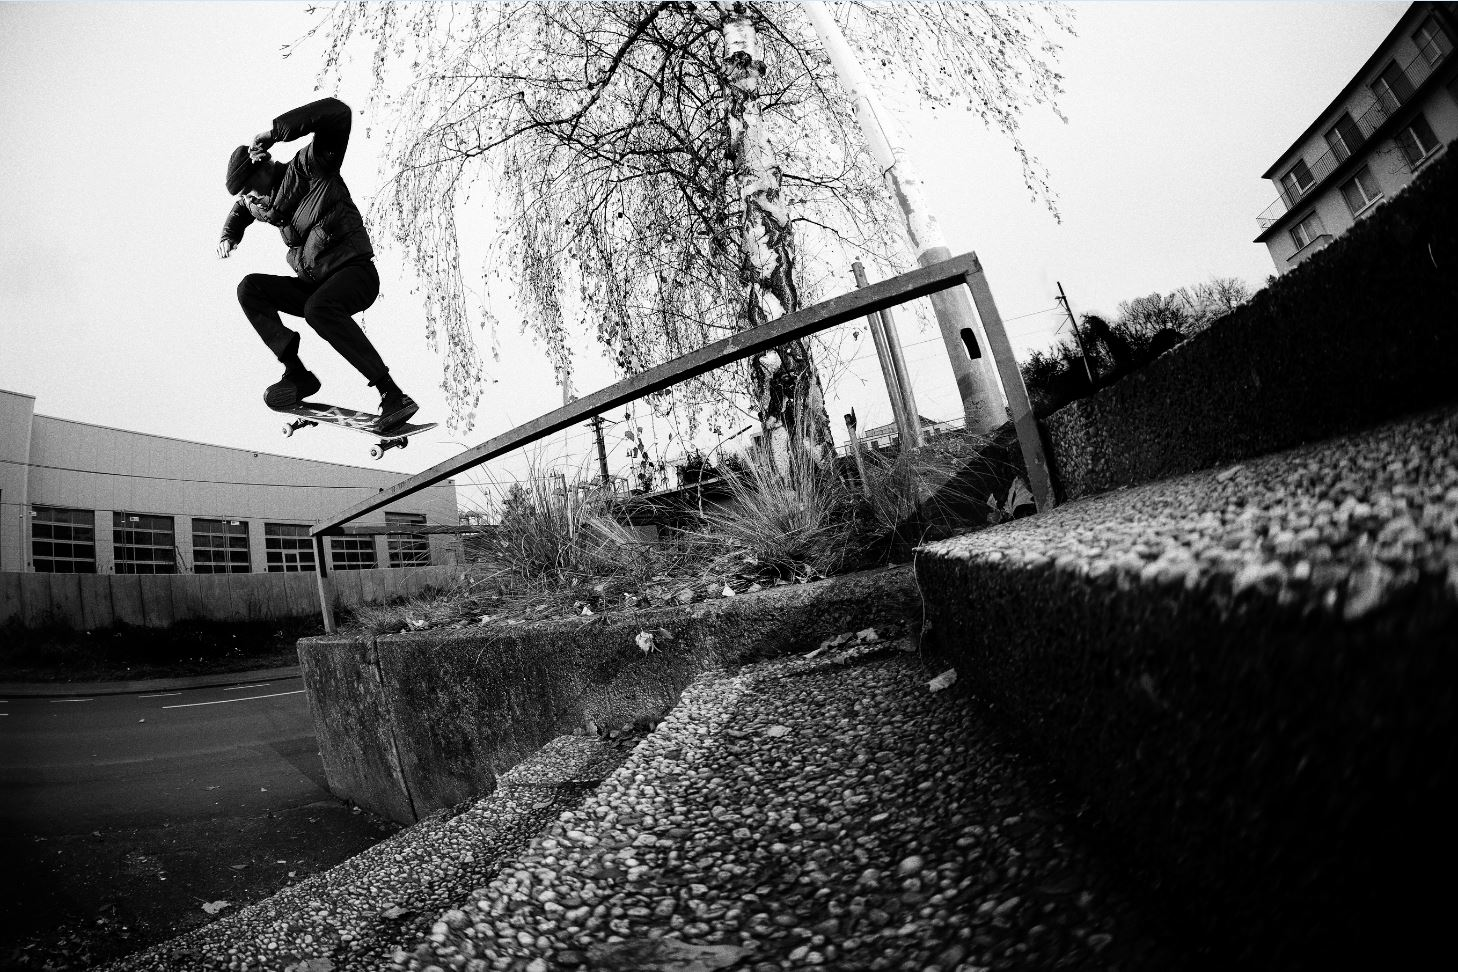 Valentin Cafuk - BS 50-50 Pop Out